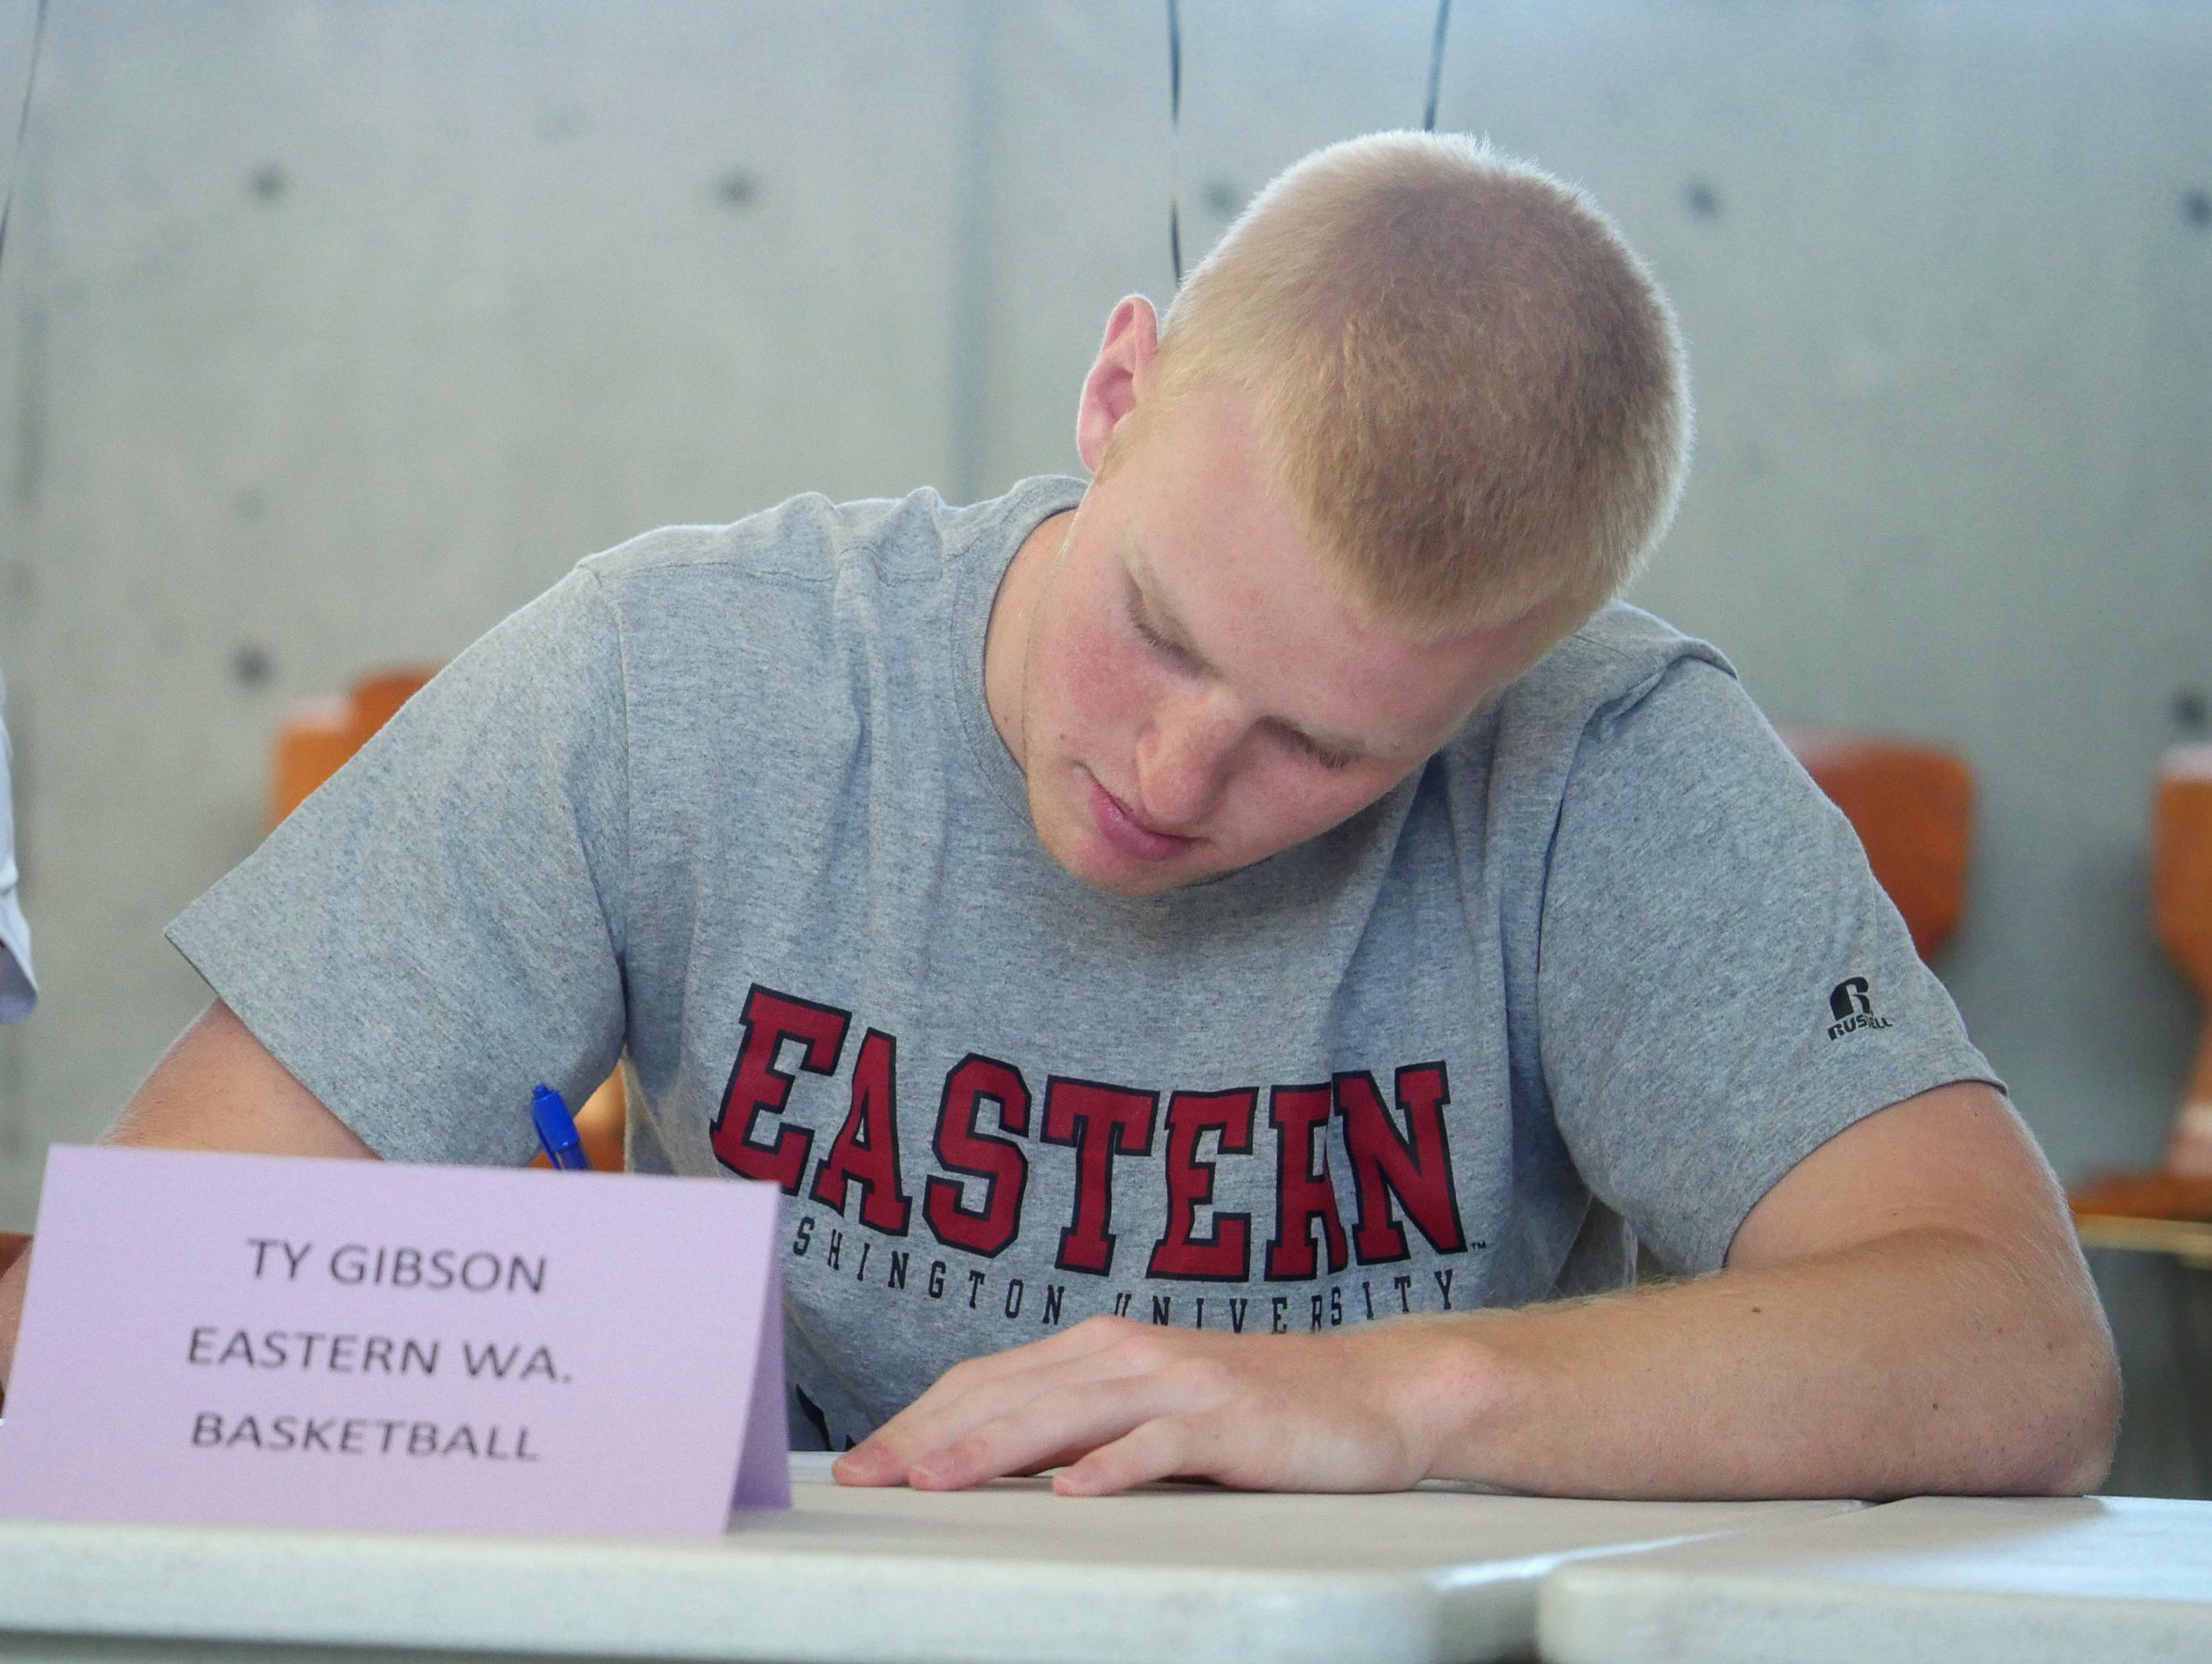 Issaquah's Ty Gibson signed to play basketball at Eastern Washington.